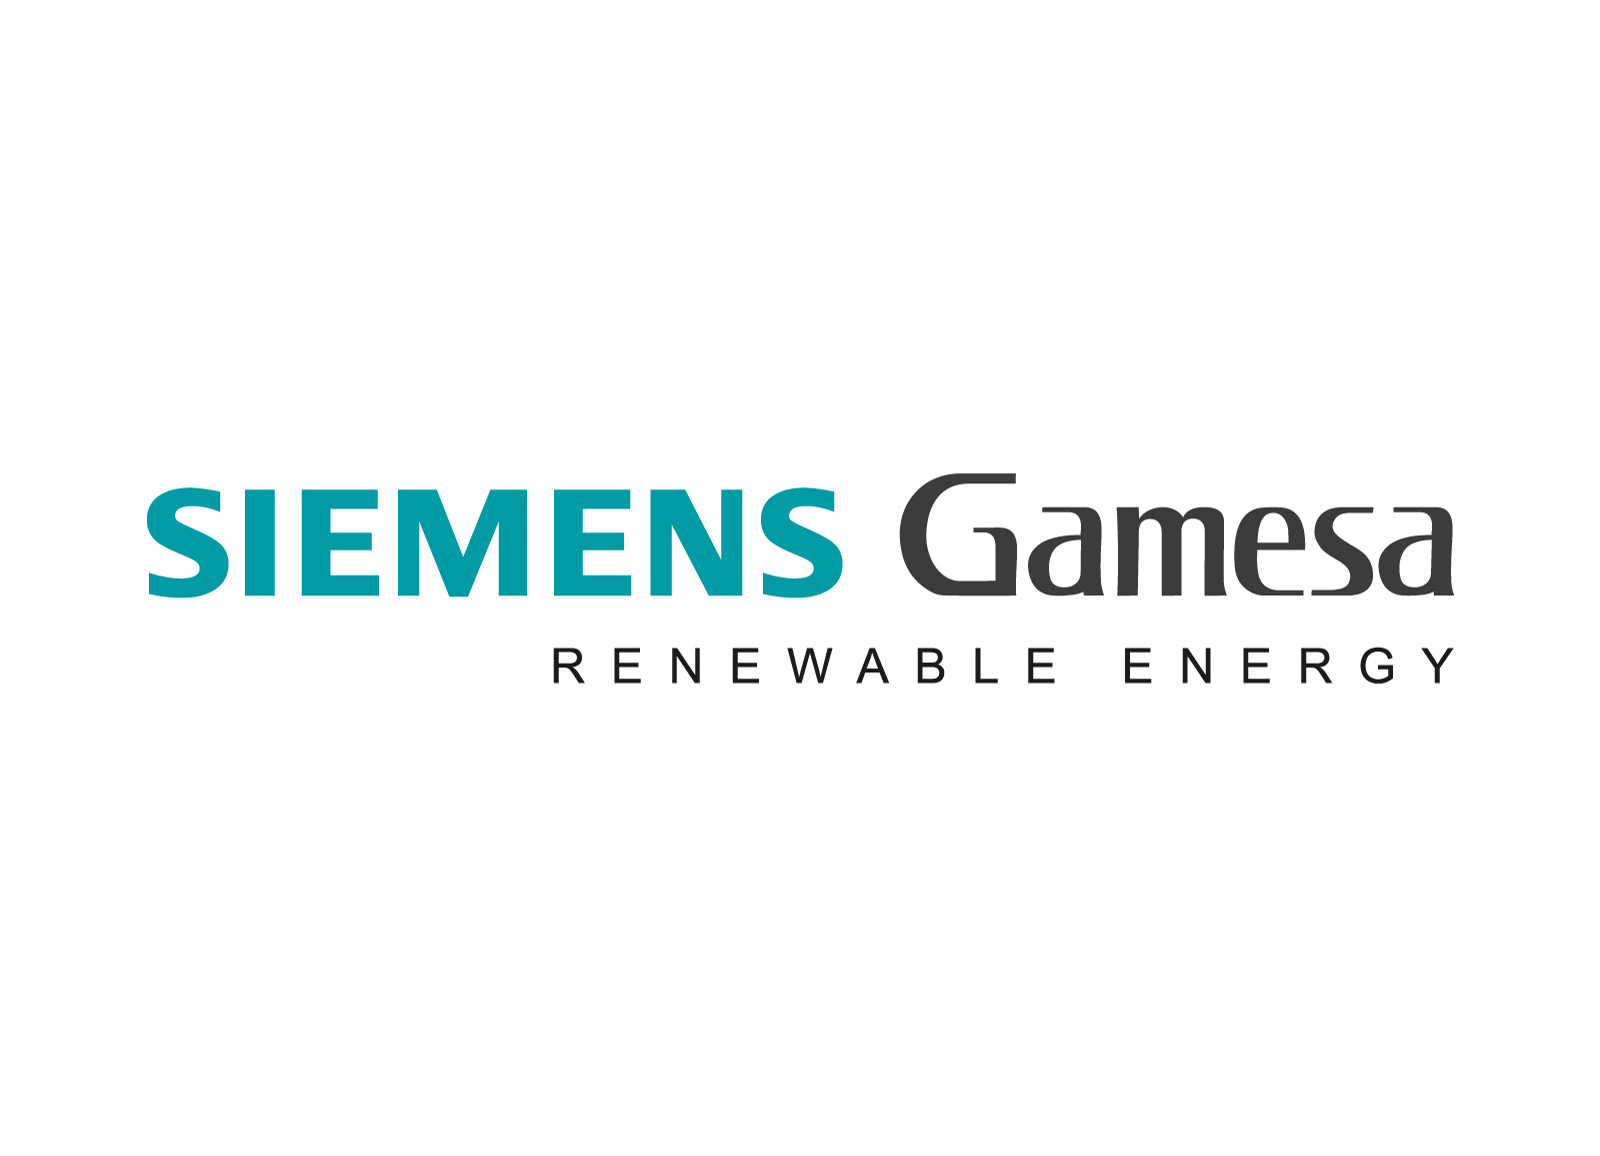 Siemens Gamesa secures two new contracts to supply 453 MW to Alfanar.